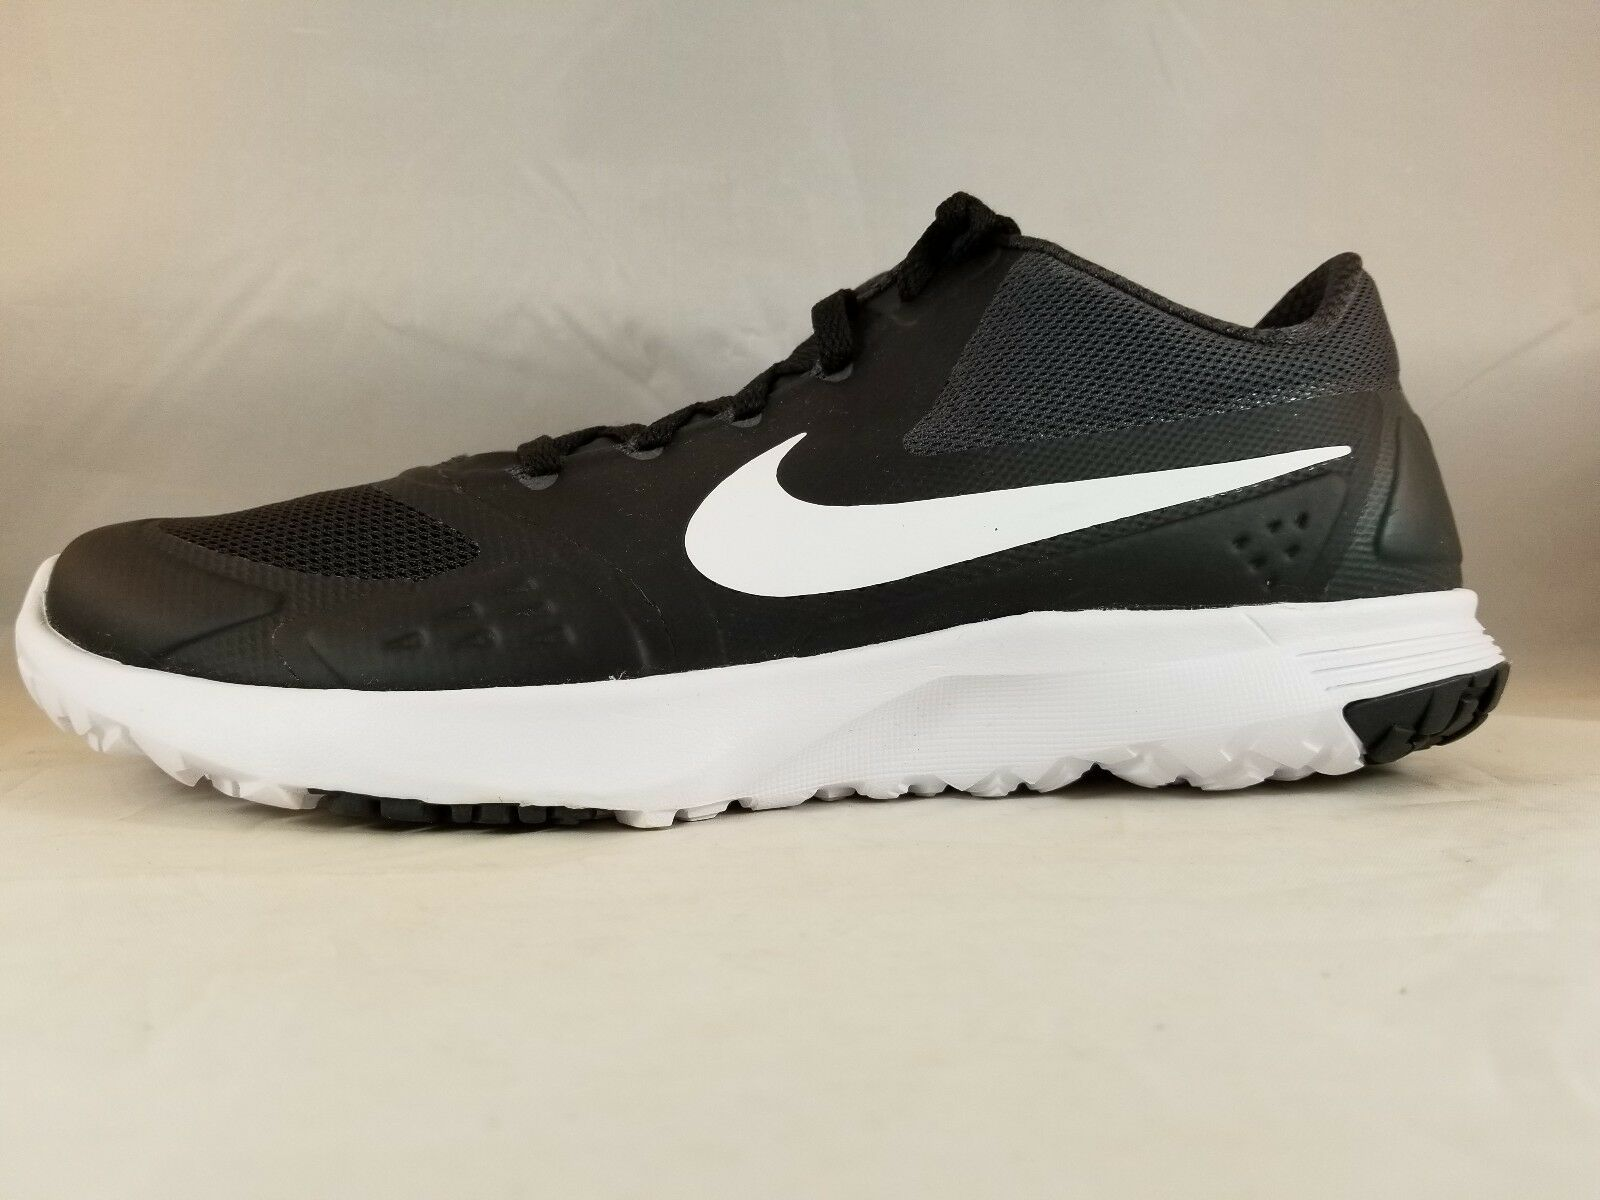 Nike FS Lite Trainer II Men's Training shoes 683141 002 Size 7.5